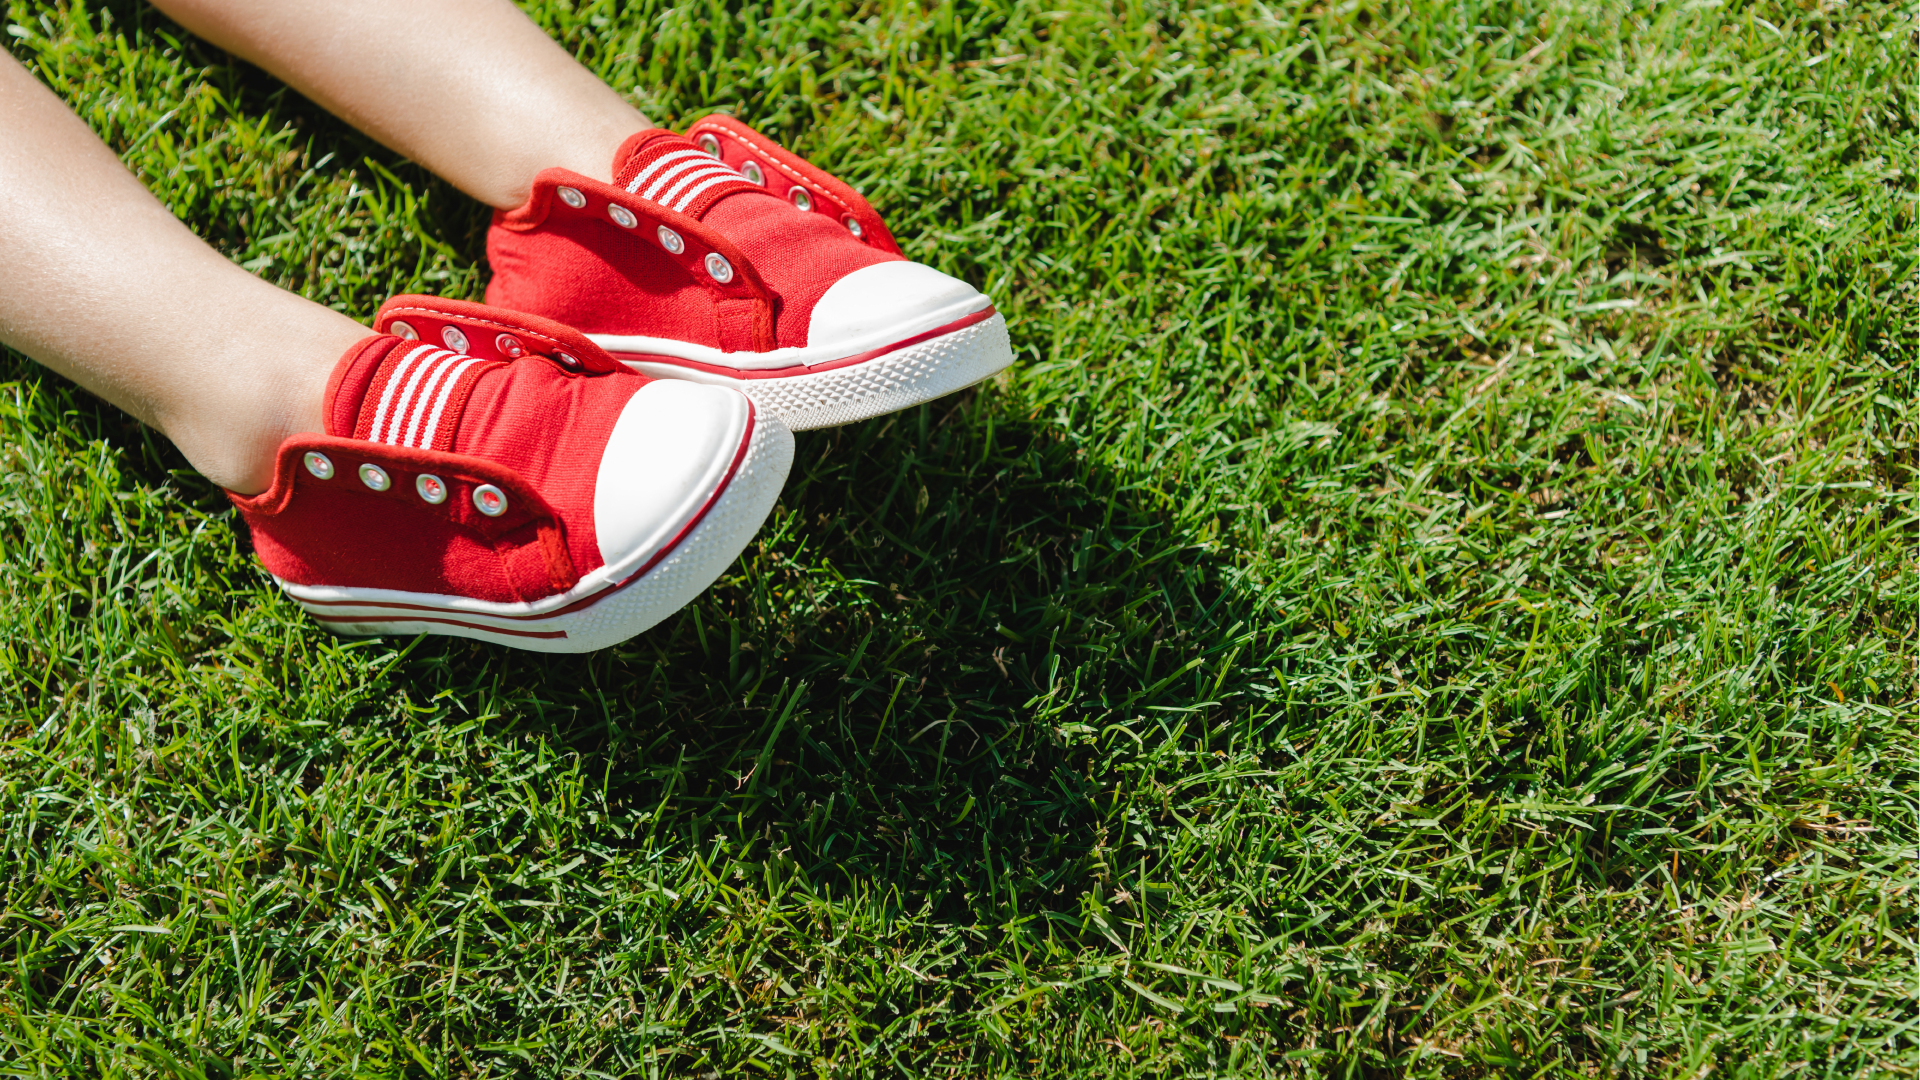 child's legs and red shoes on green grass